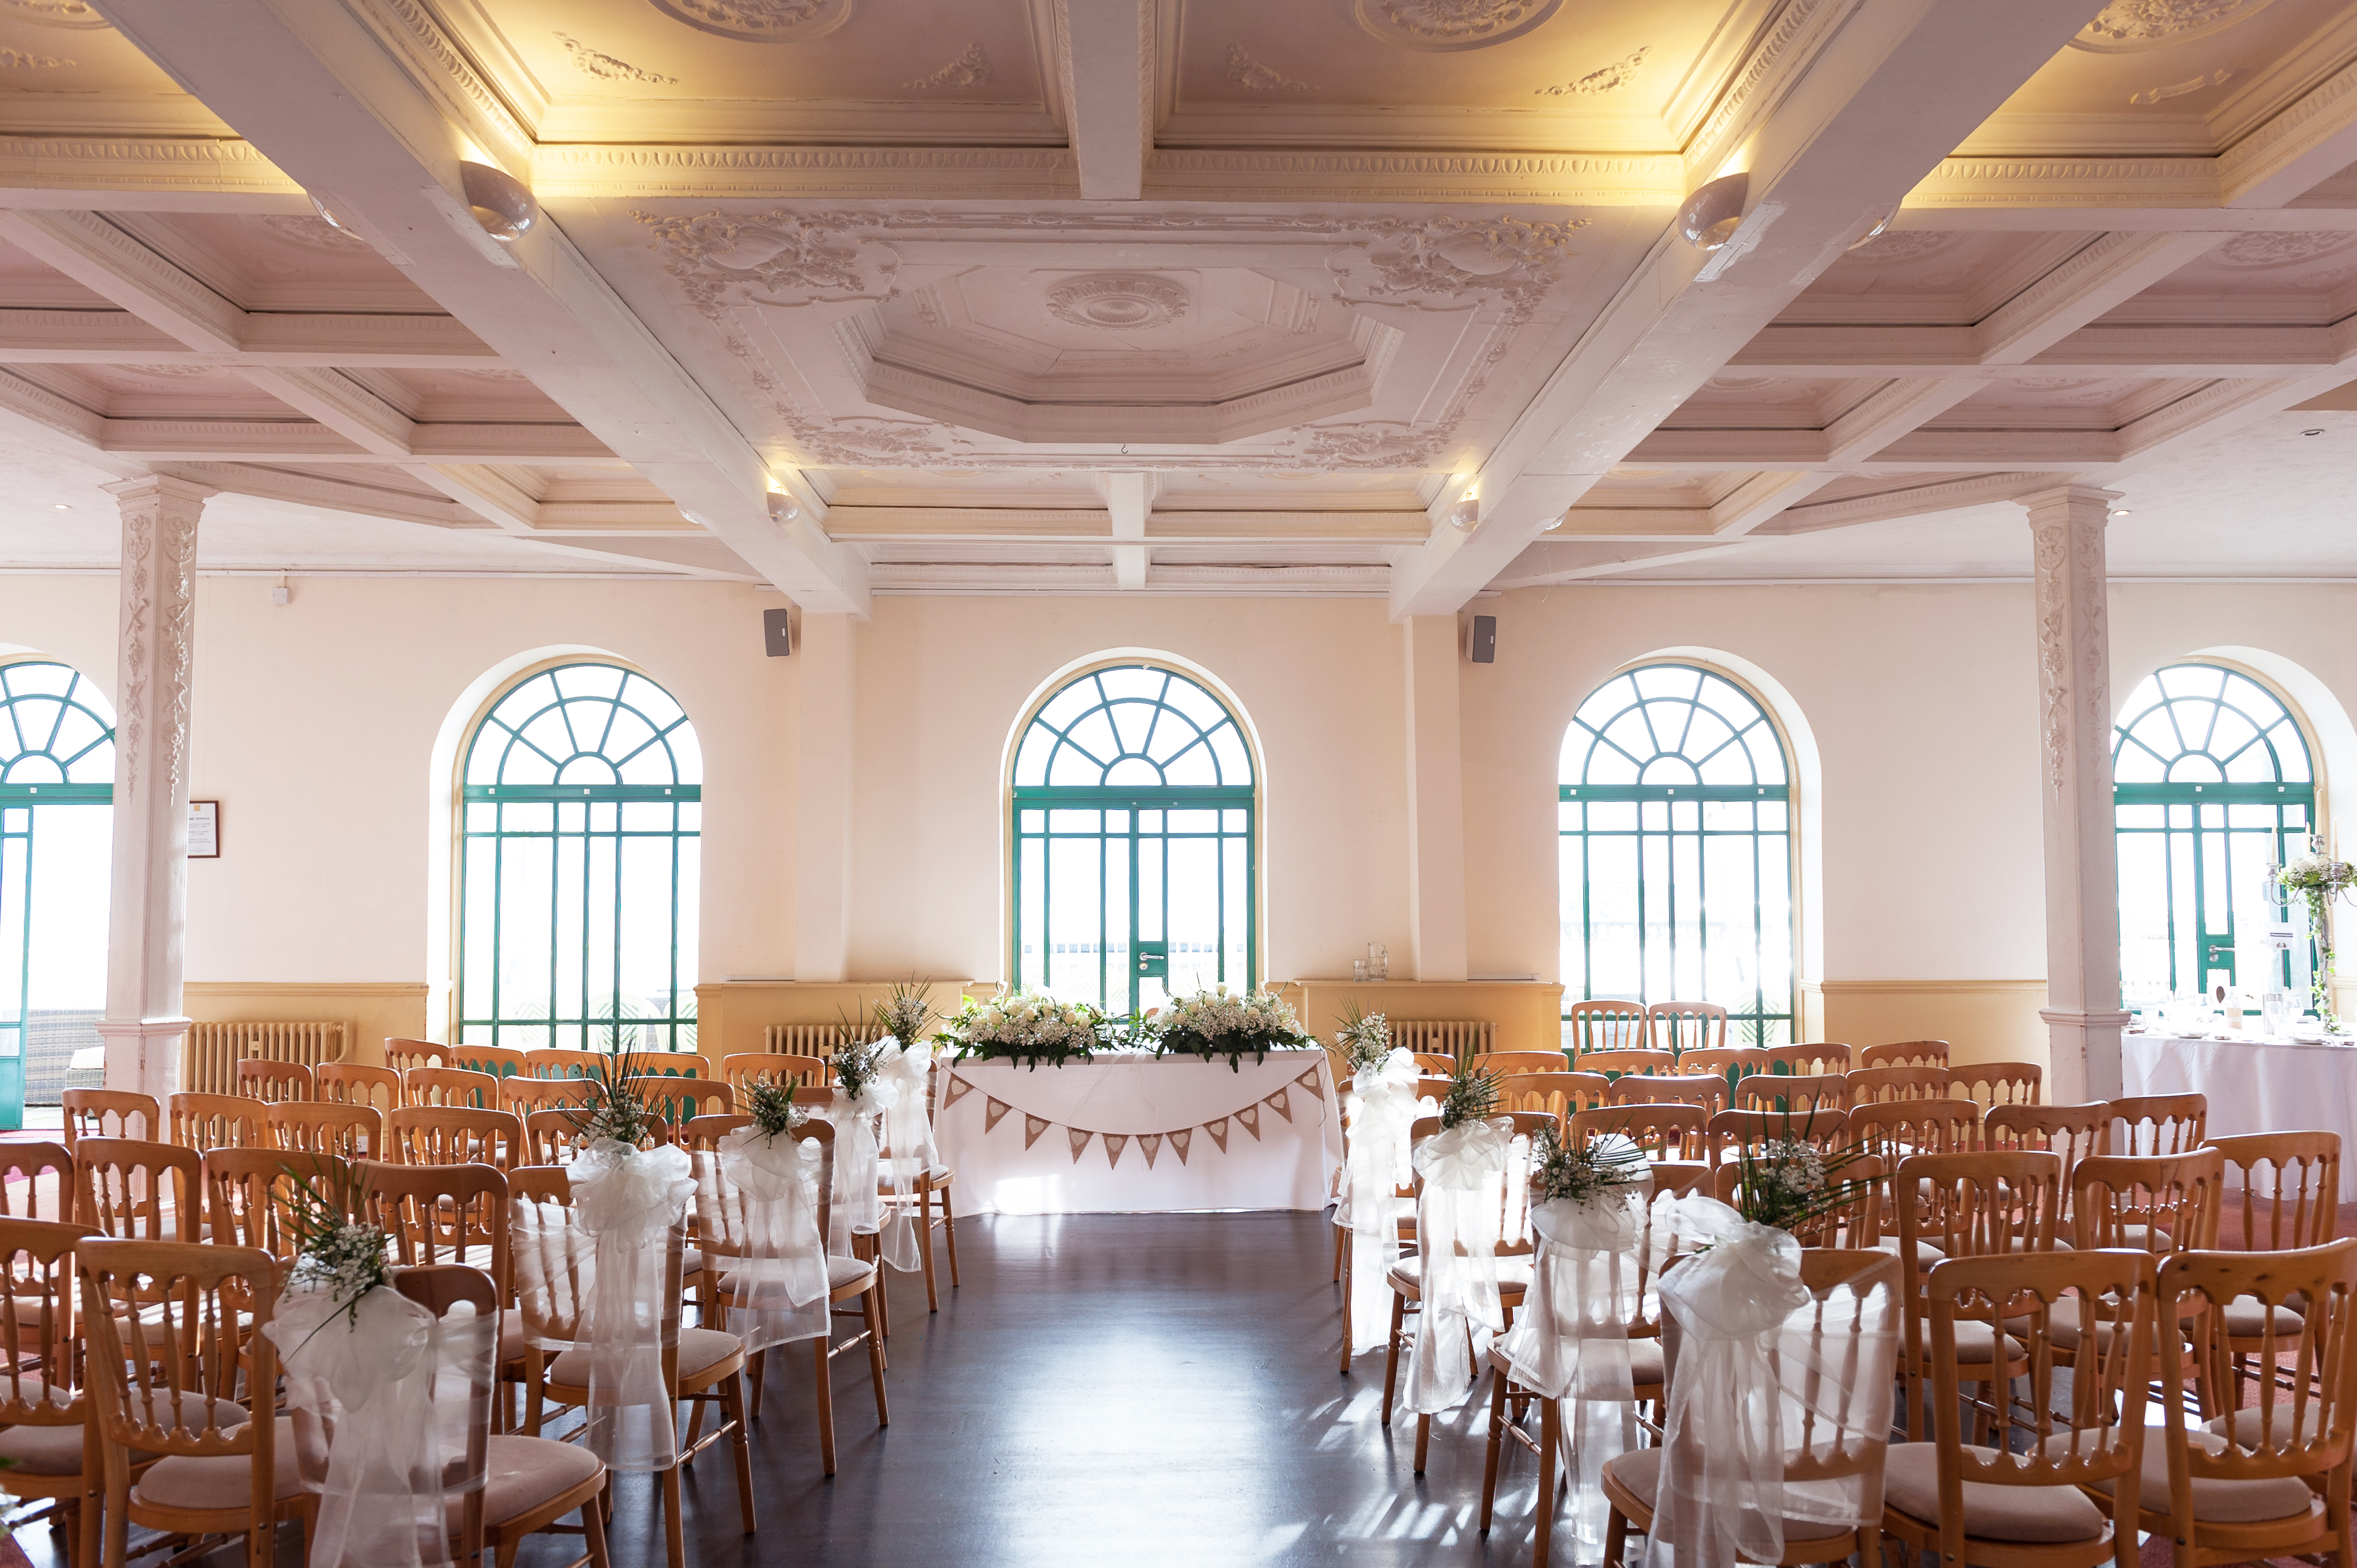 Wedding-The Dome-Main- Lounge-Ceremony-Ribbons